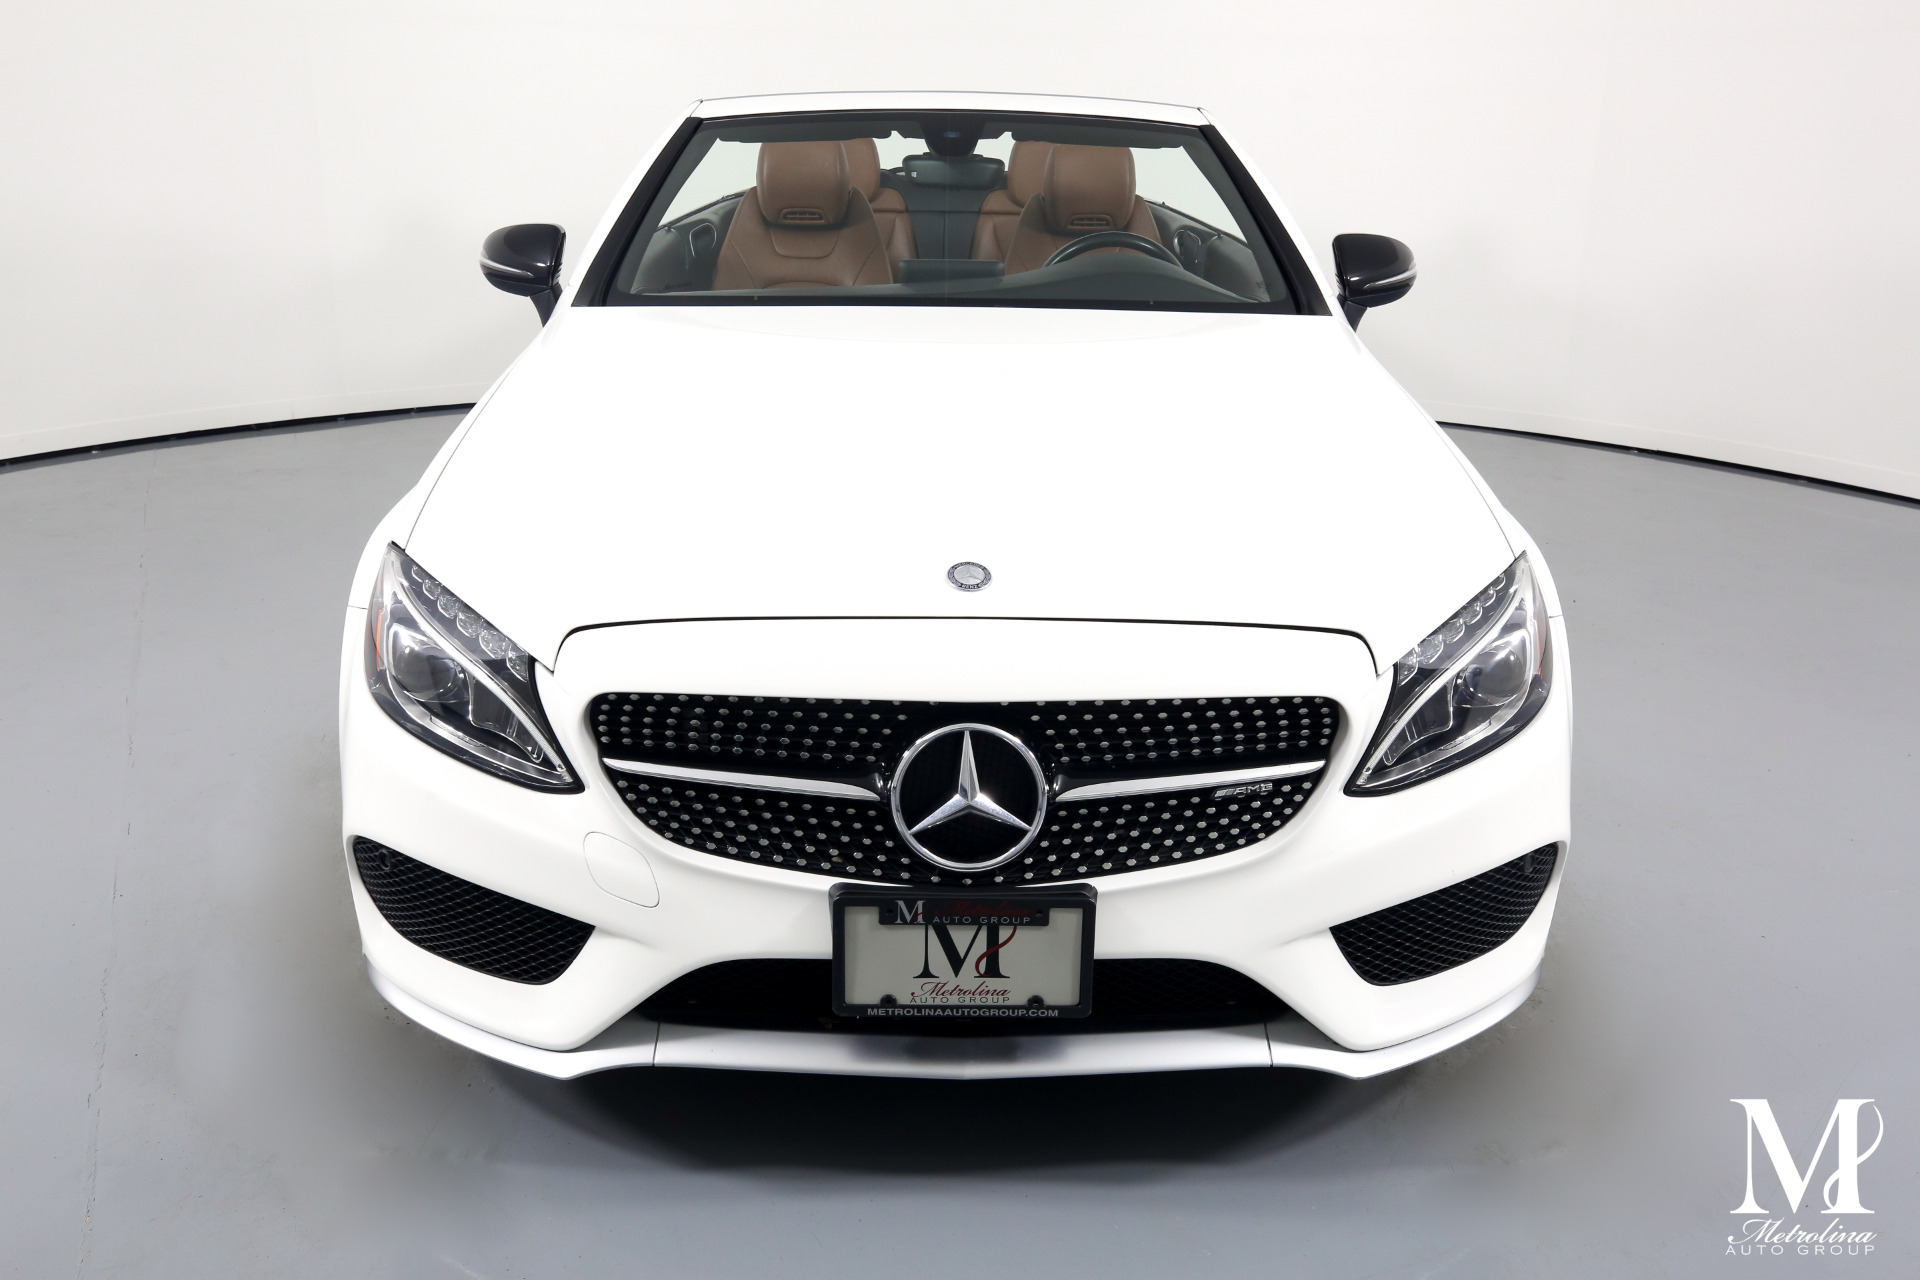 Used 2017 Mercedes-Benz C-Class AMG C 43 for sale $59,996 at Metrolina Auto Group in Charlotte NC 28217 - 4